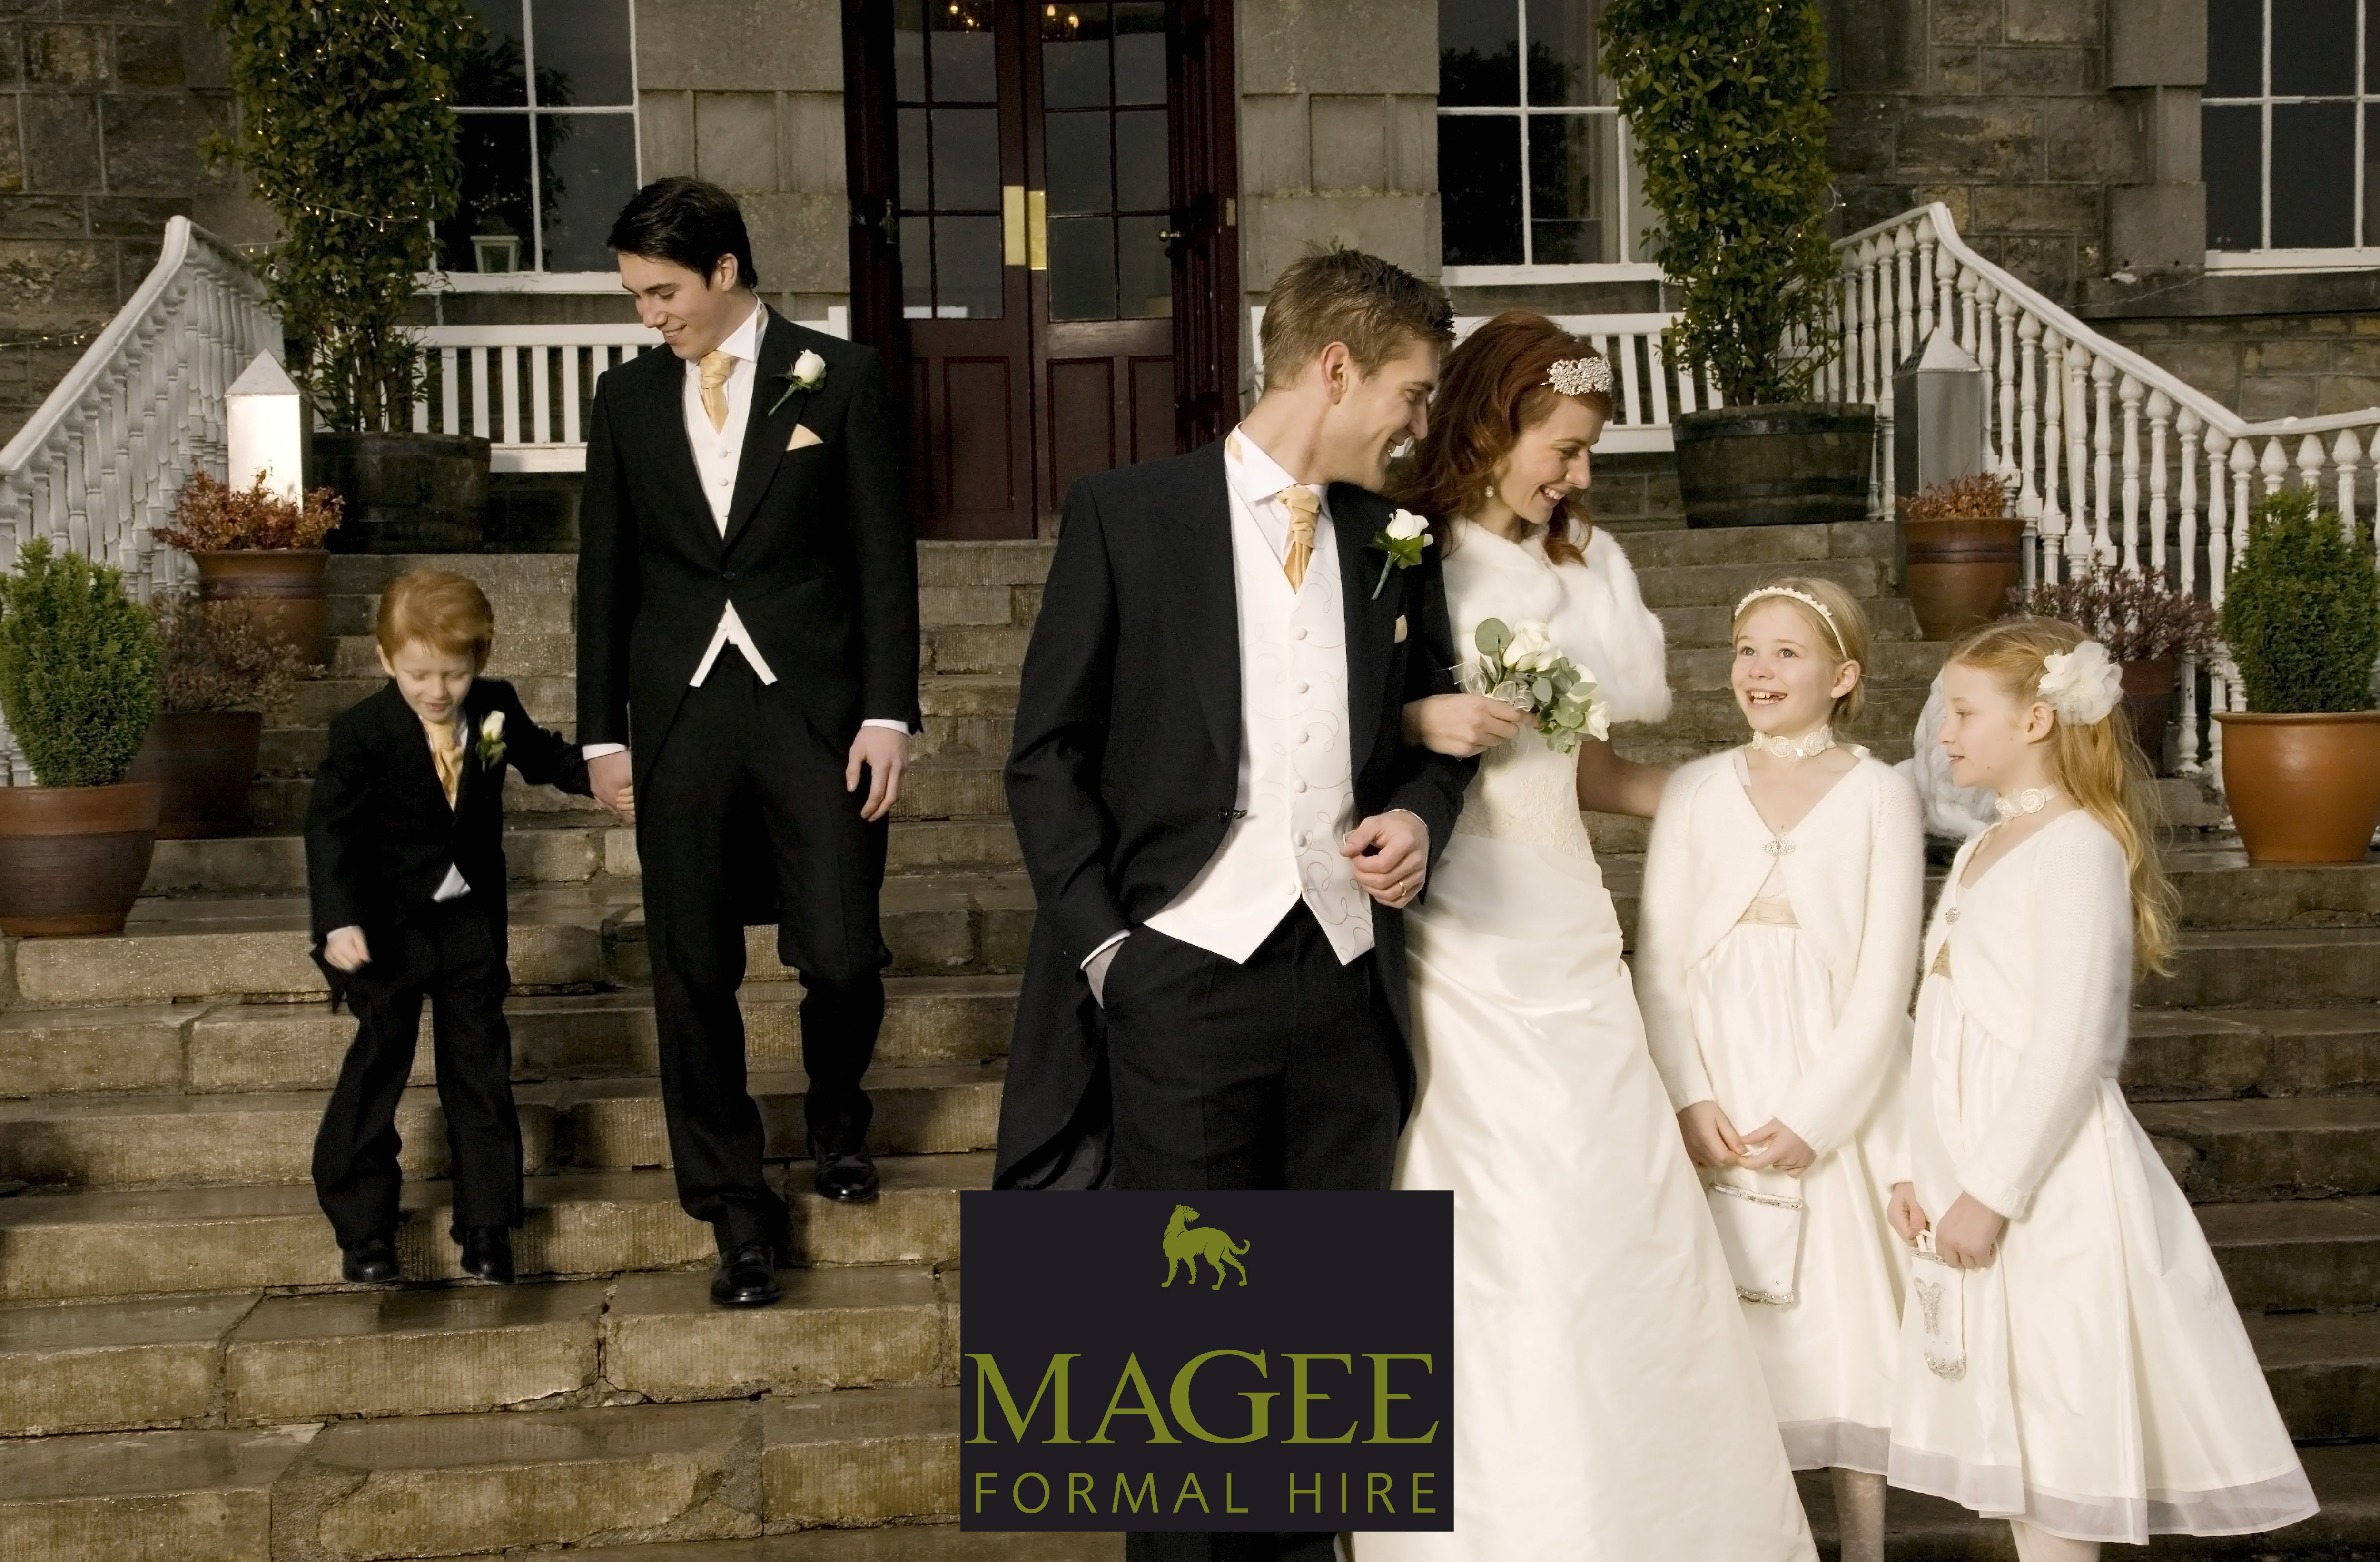 Formal Dress Hire Northern Ireland Image Collections Dresses Images Design